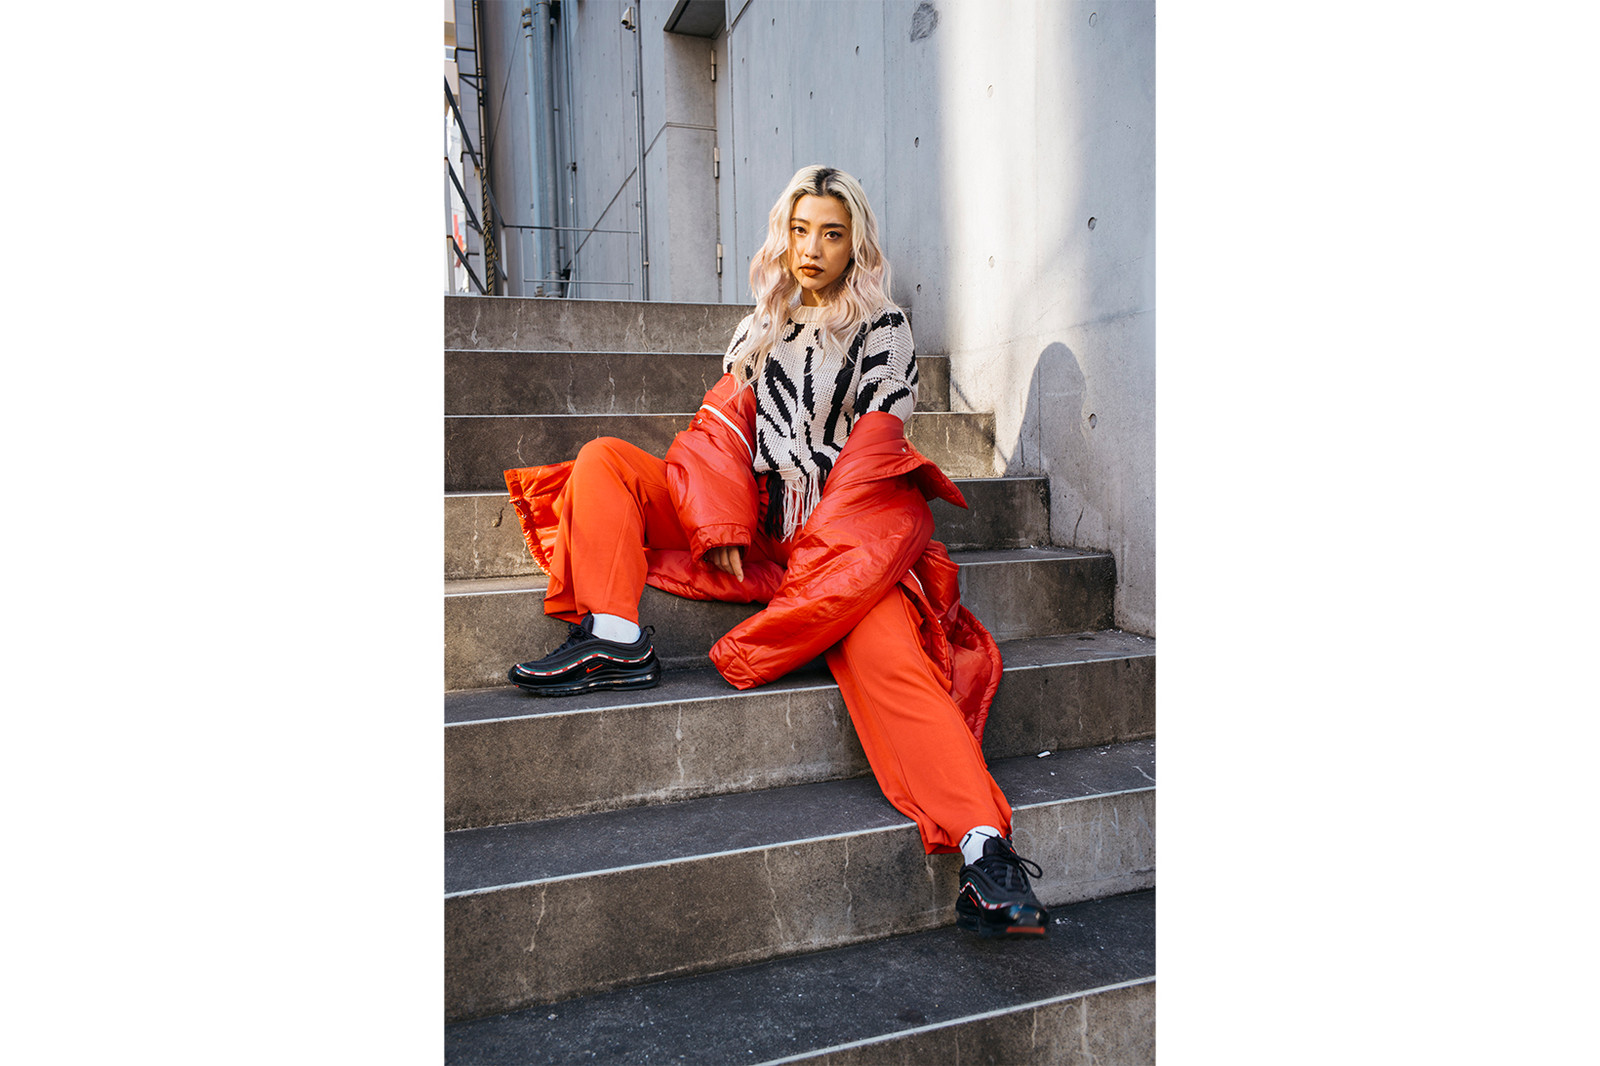 Alisa Ueno model dj fig&viper fig and viper creative director clothing brand tokyo japan japanese iPhone x commercial interview